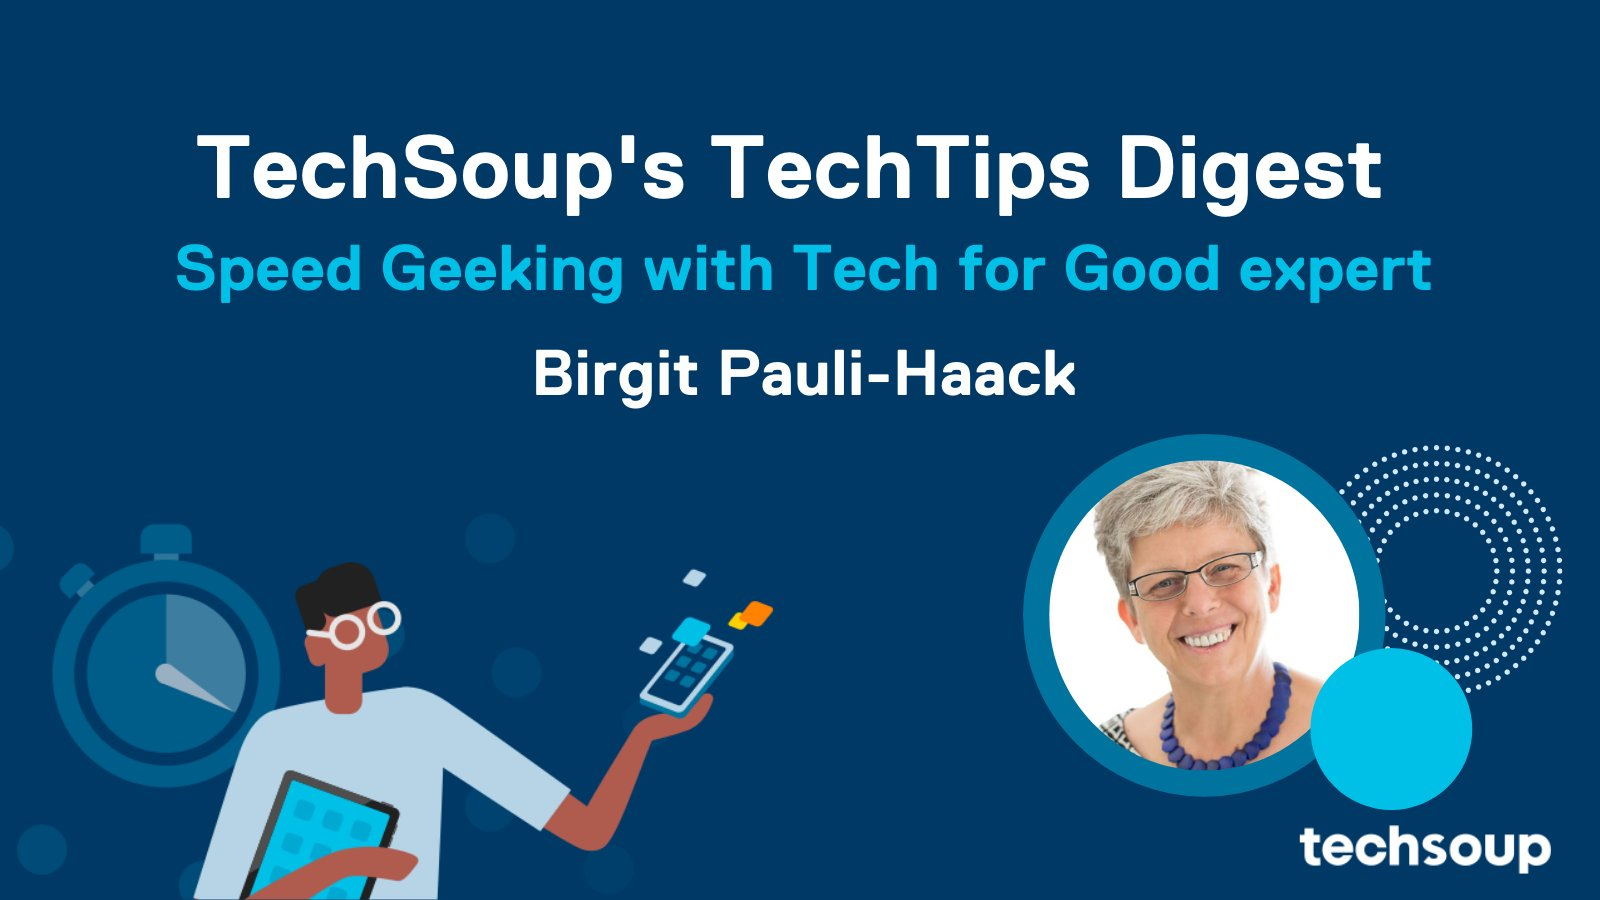 TechSoup TechTips Digest with Birgit Pauli-Haack